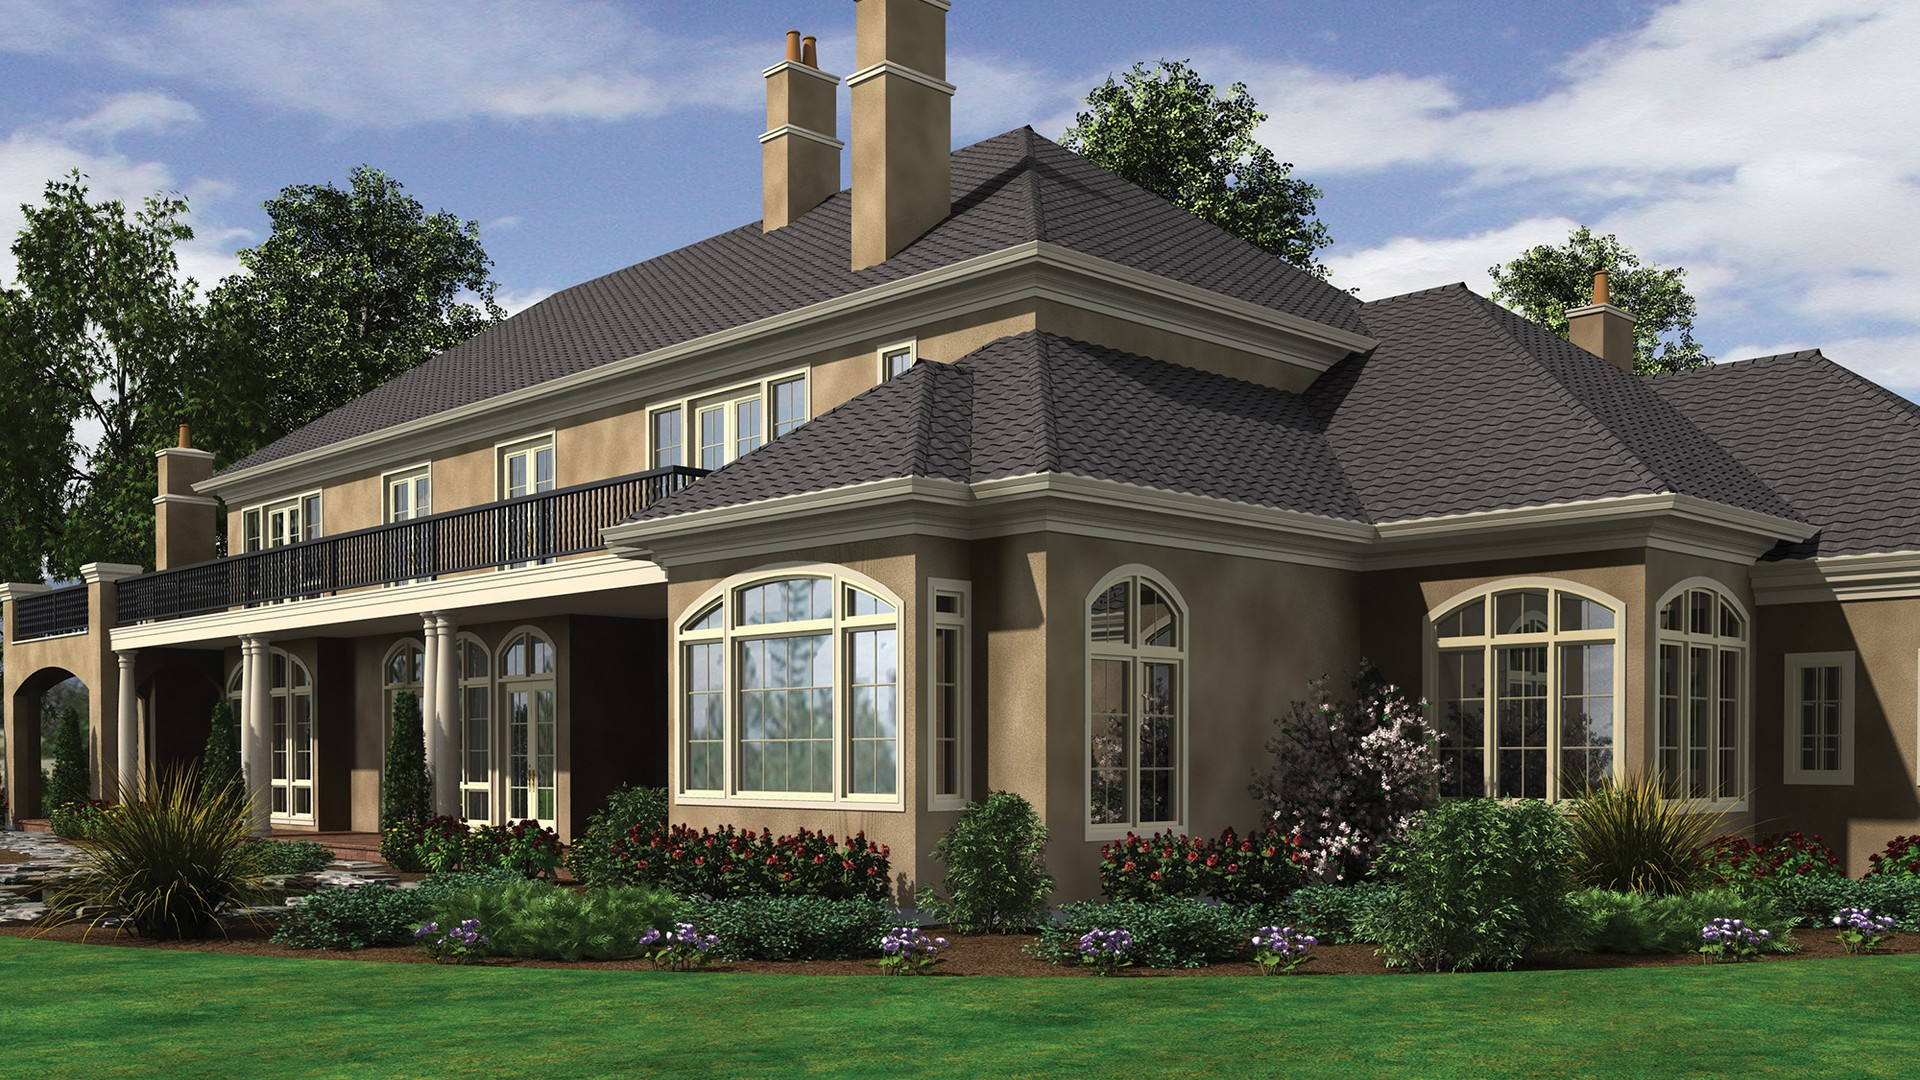 european house plan 2462 the galloway  9787 sqft  8 beds  6 3 baths